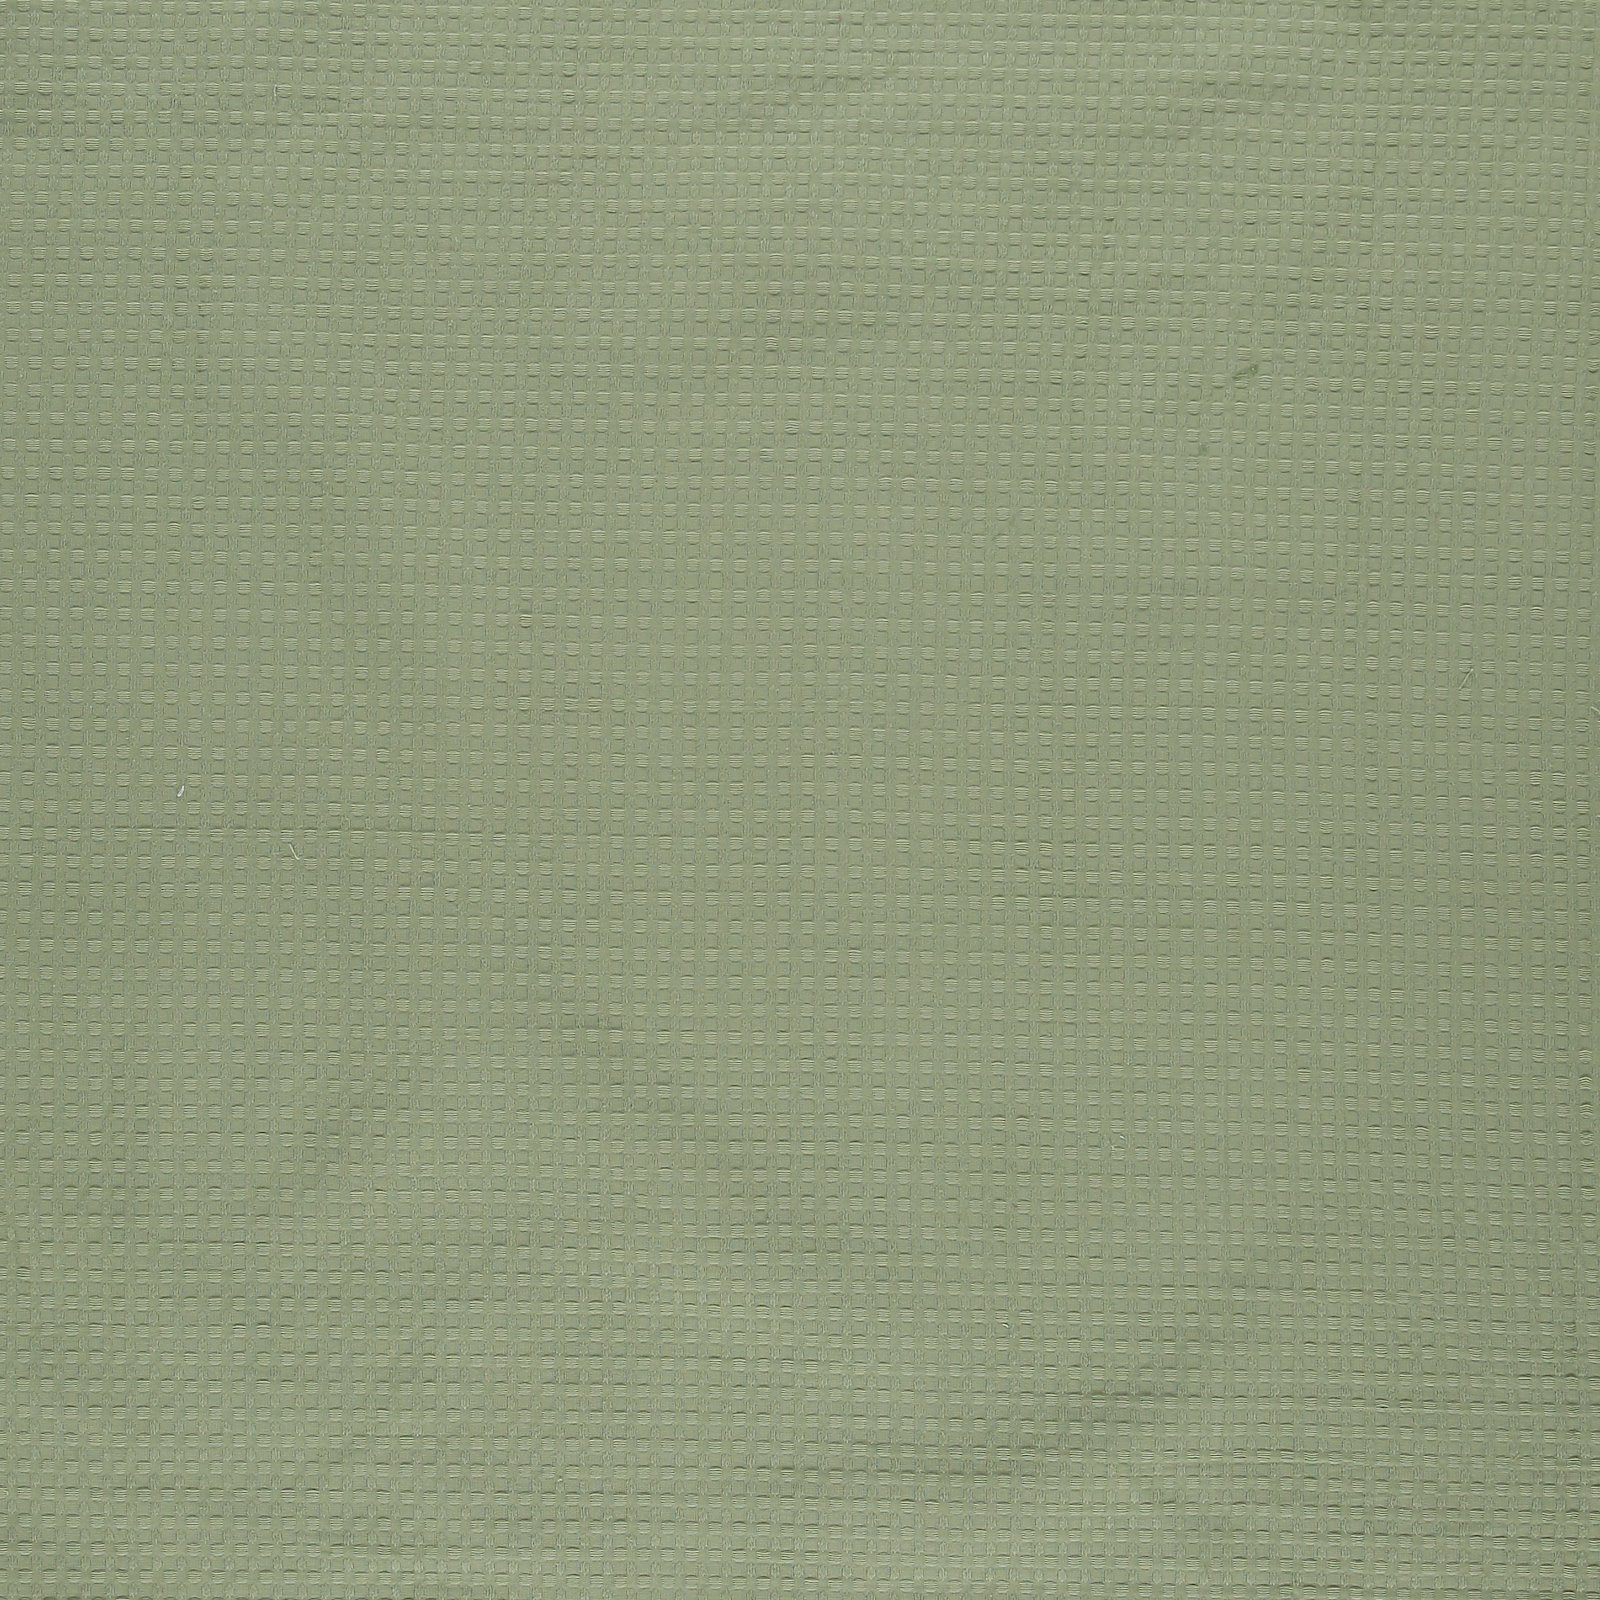 Woven jacquard light green w structure 501728_pack_solid